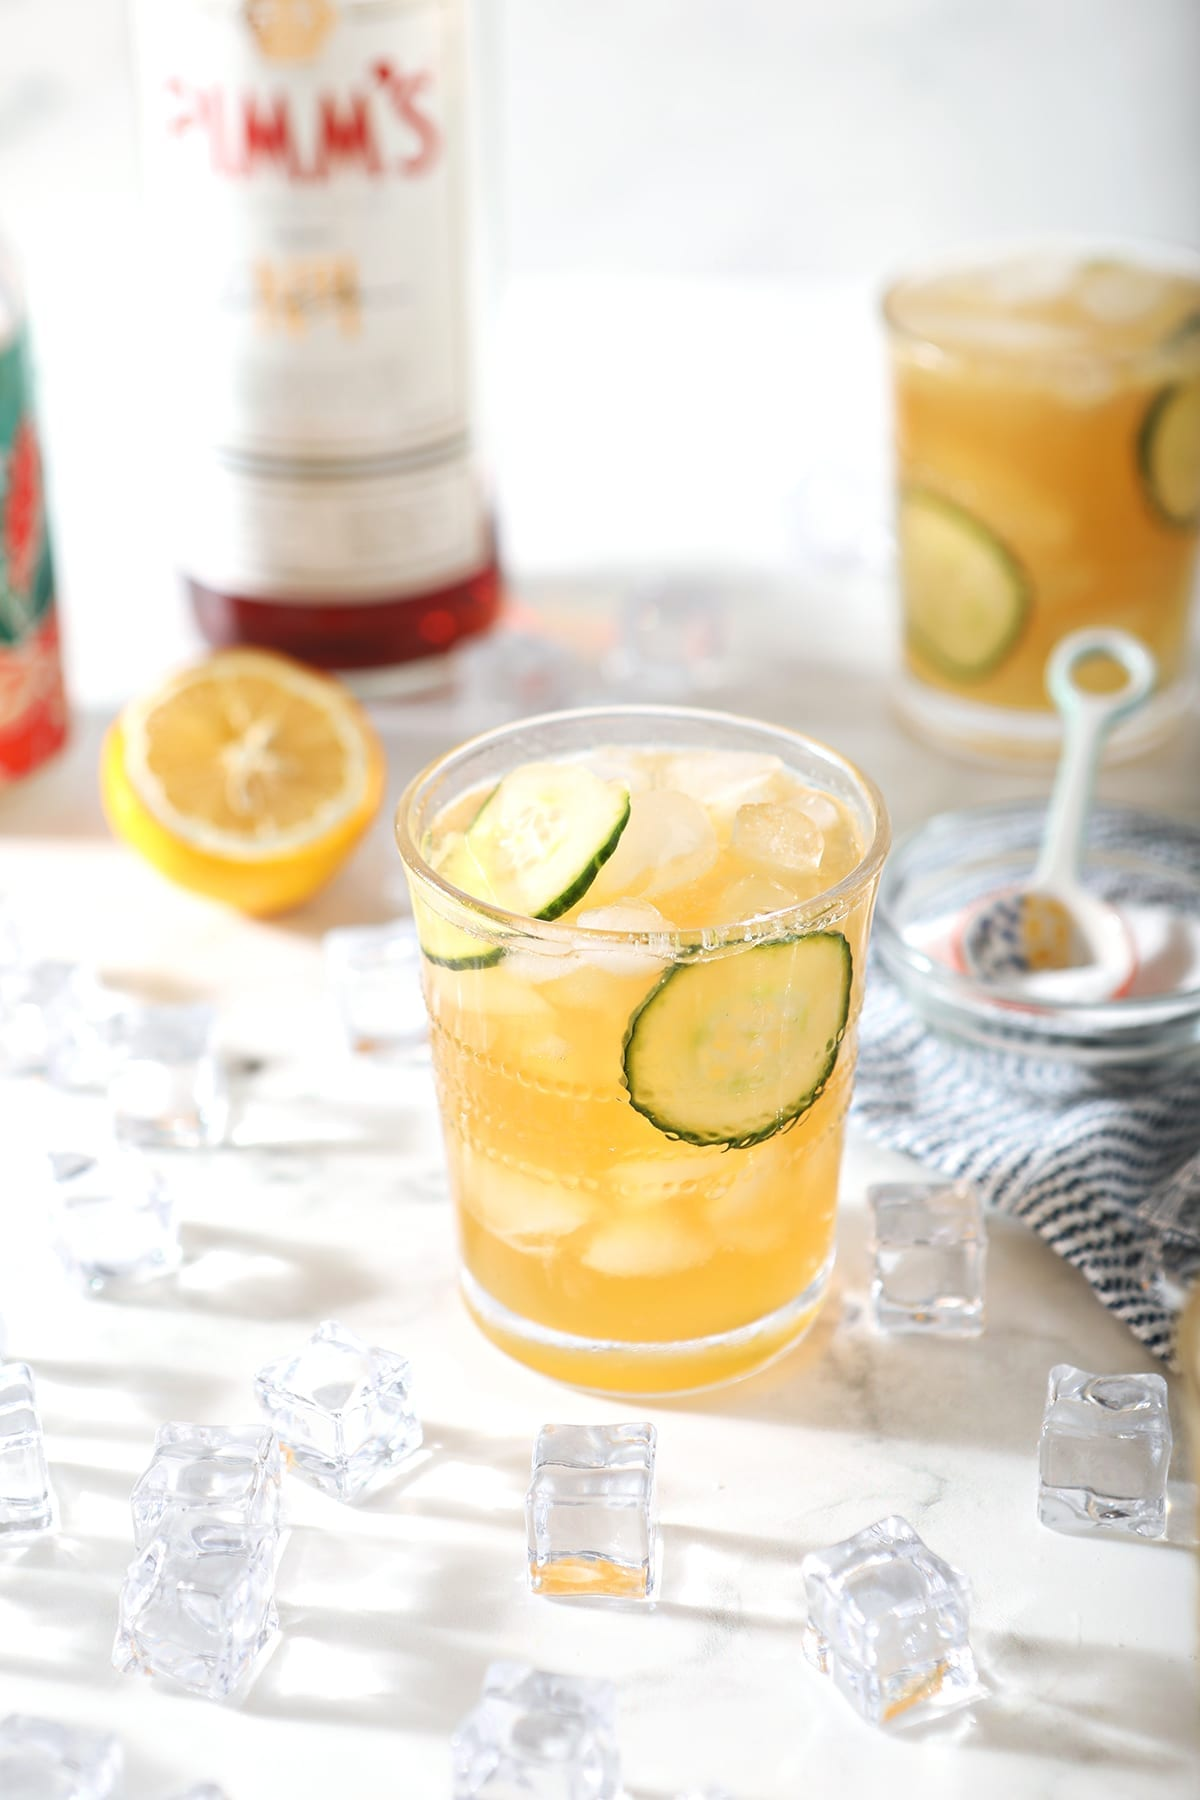 Two Pimm's Cups are surrounded by ingredients and ice, from a 45 degree angle, on marble